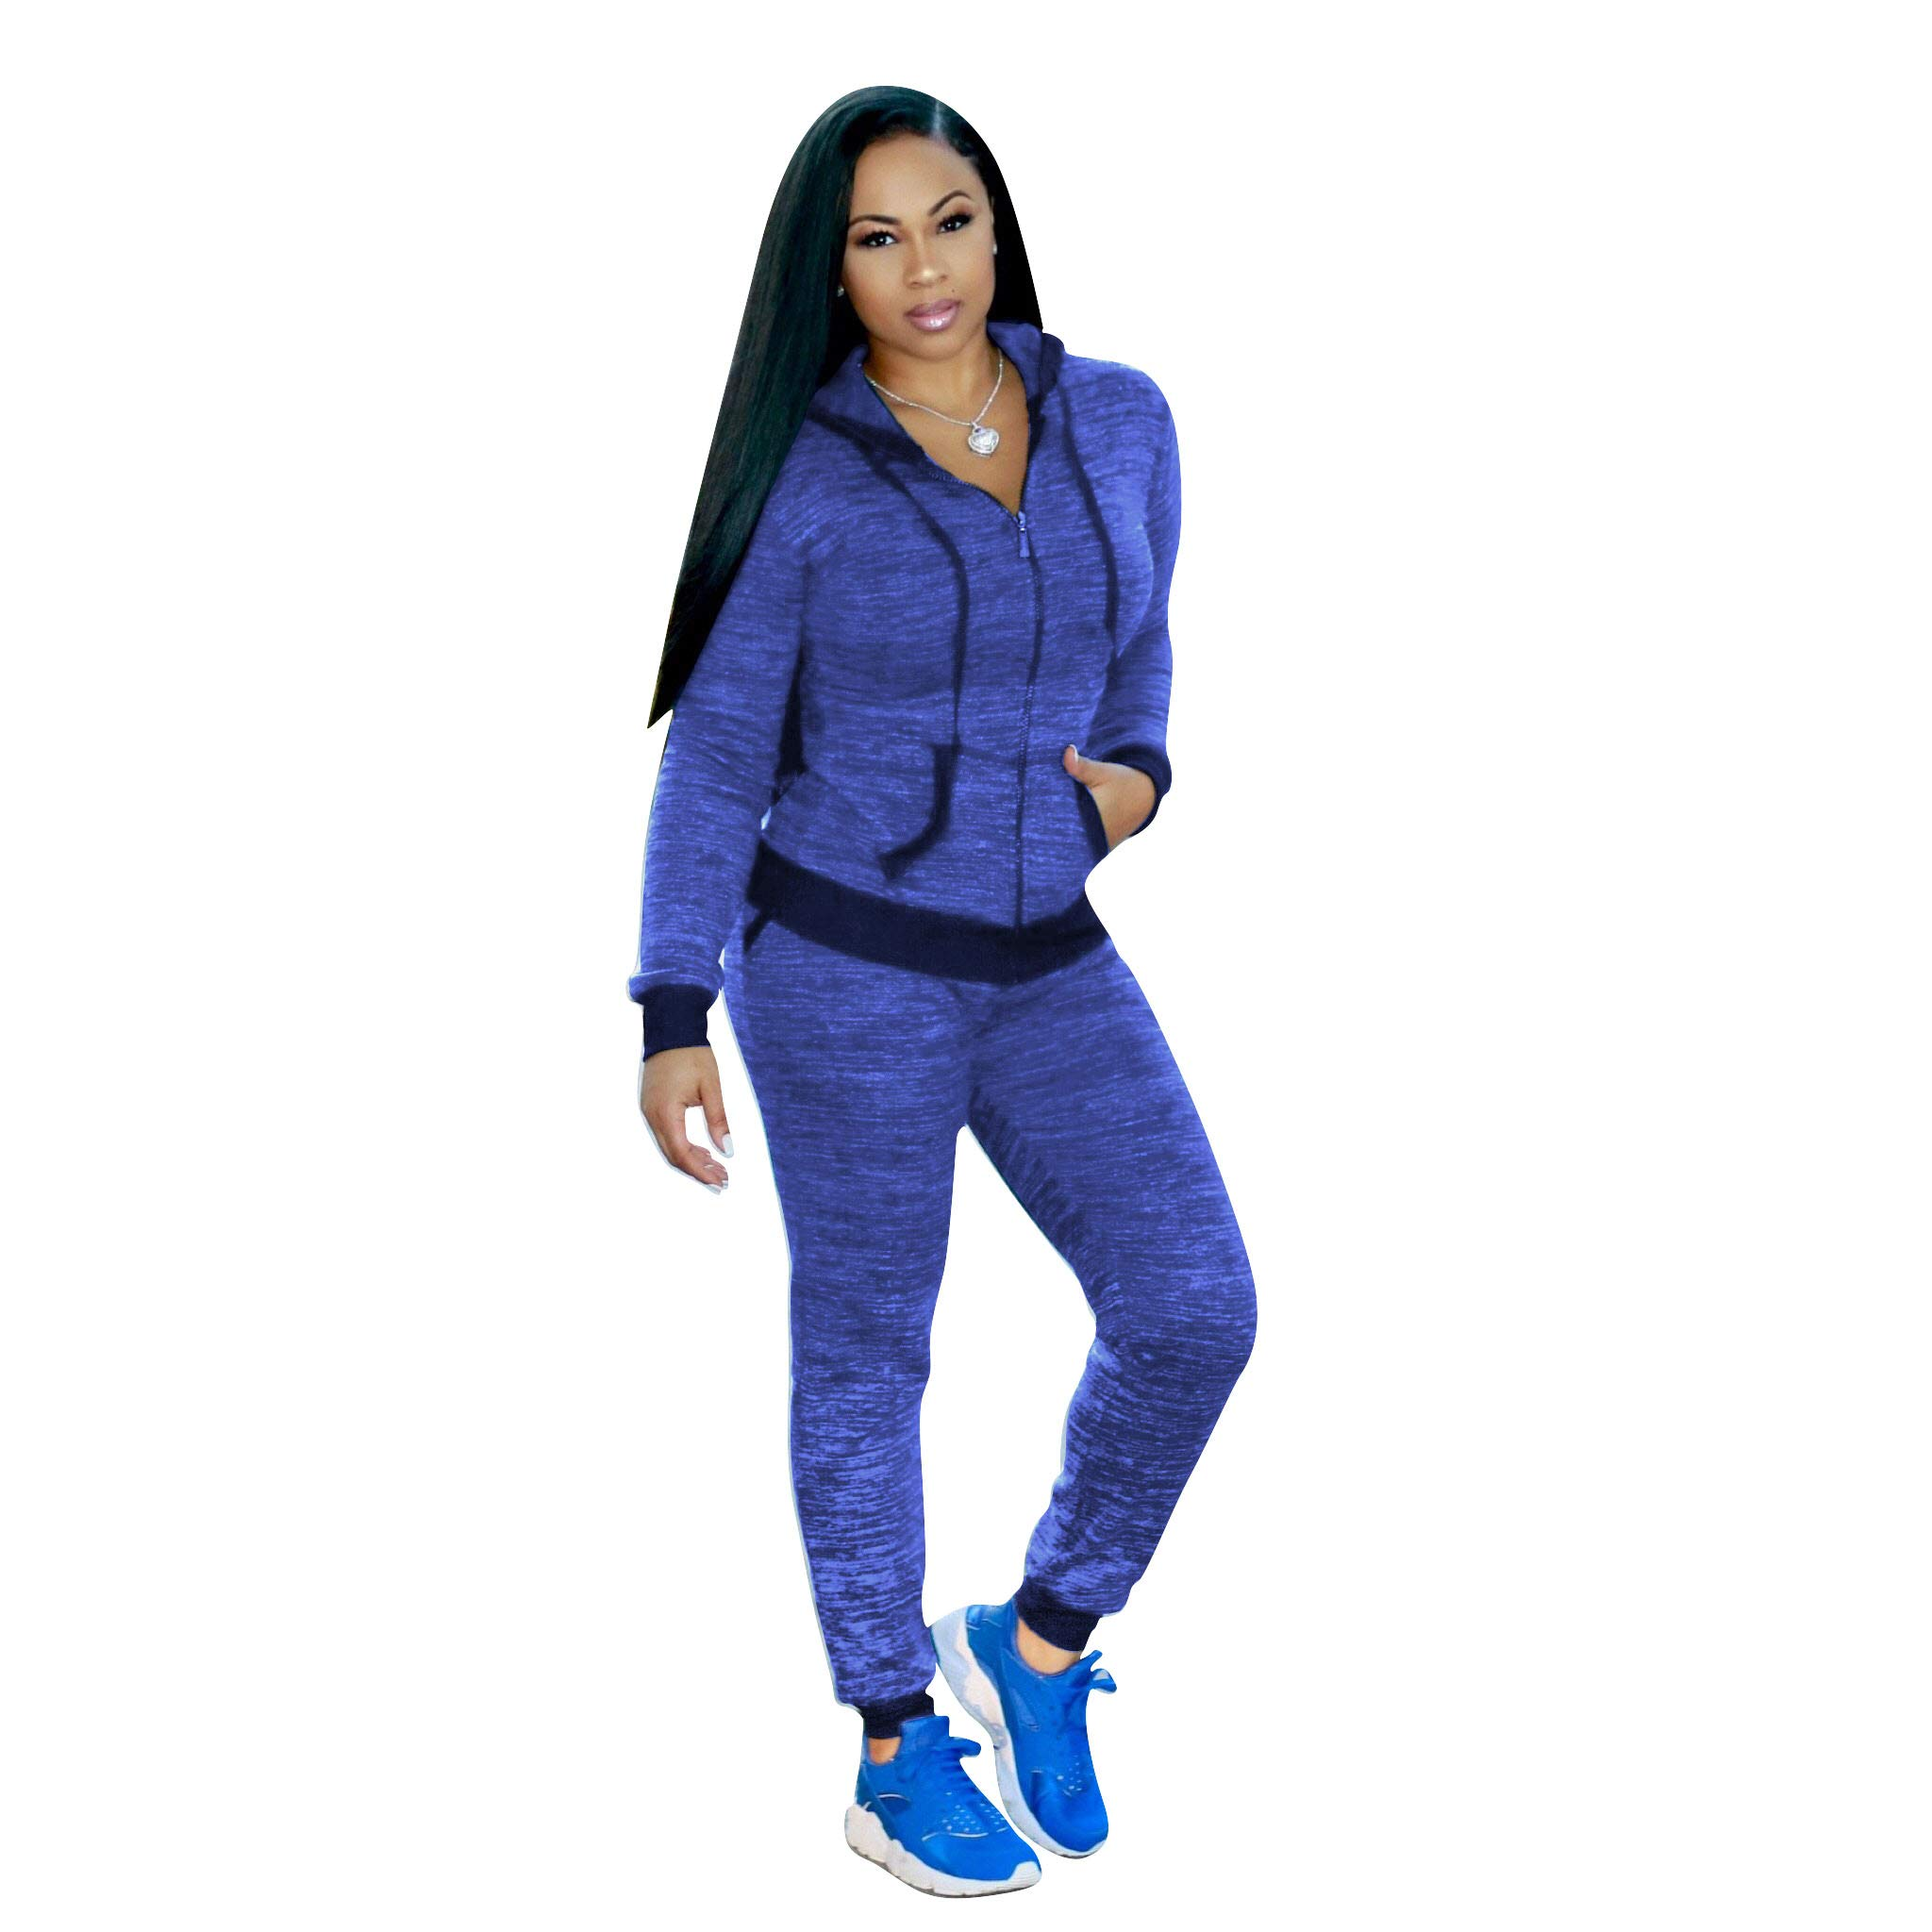 2Pieces Womens Sports Outfits Set Sweatsuit,Long Sleeve Open Front Zipper Hoodie Skinny Jogger Pants Tracksuit with Pockets Blue